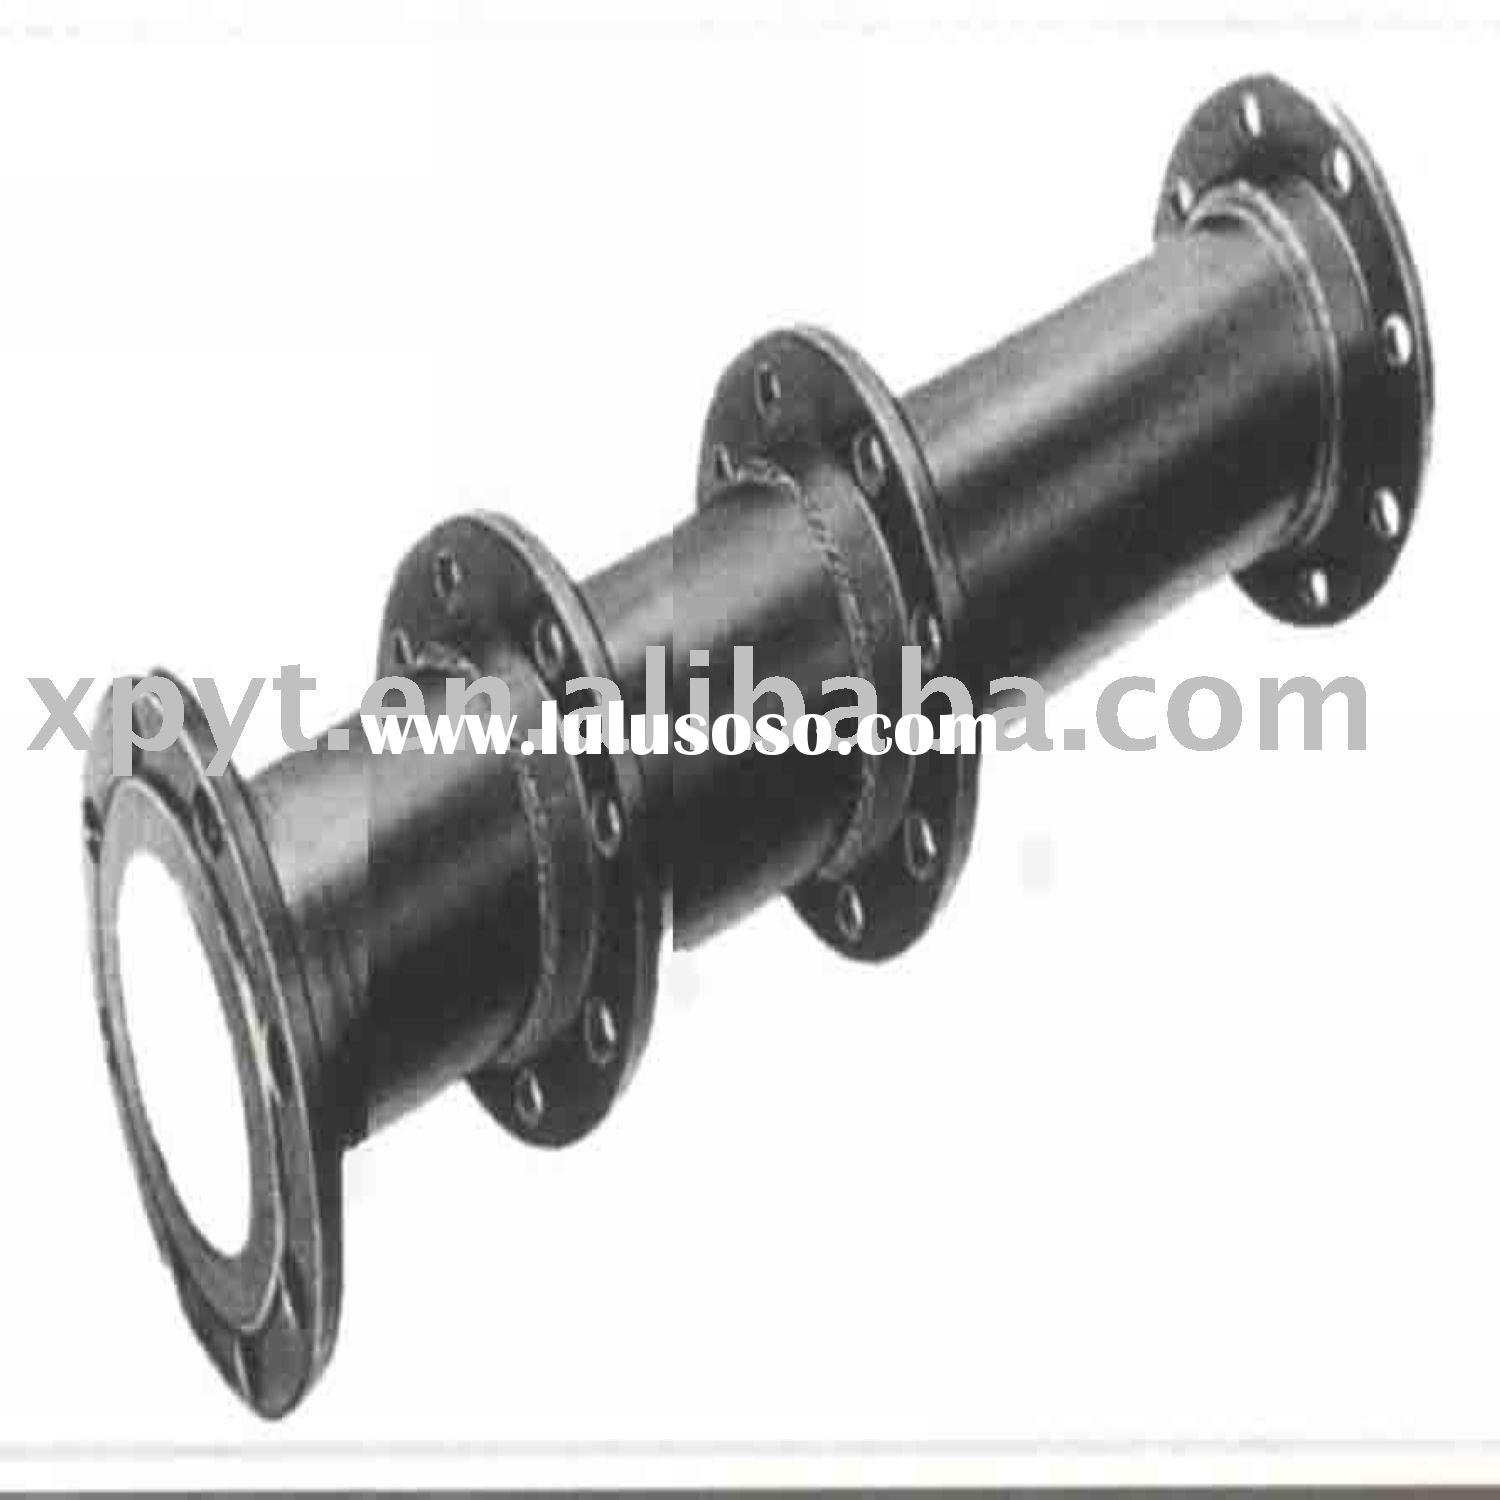 Ductile iron pipe fitting--Puddle Flange Pipe